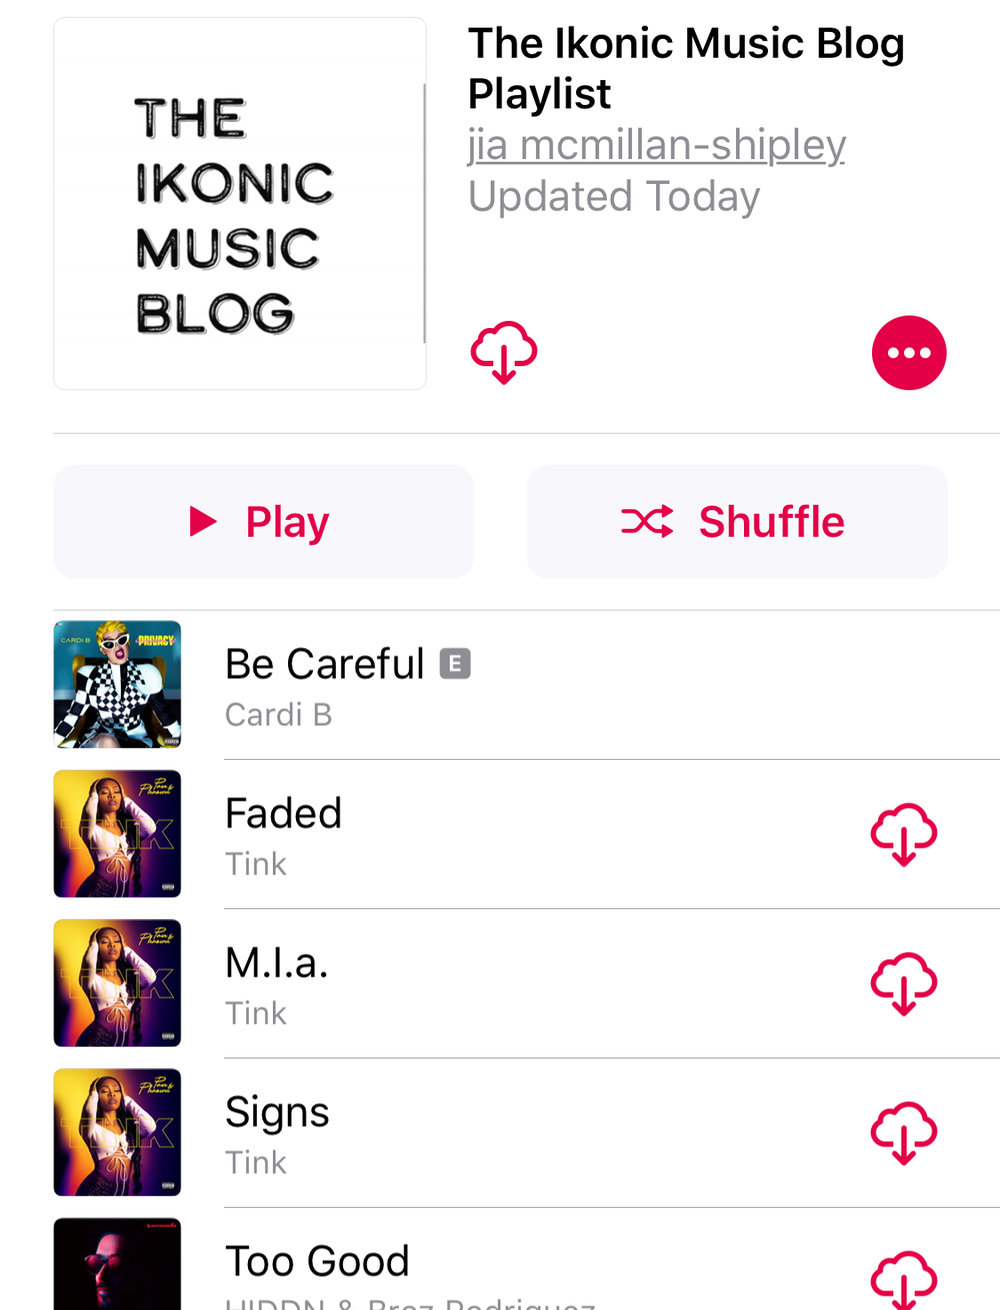 the most ikonic playlist in the world! -